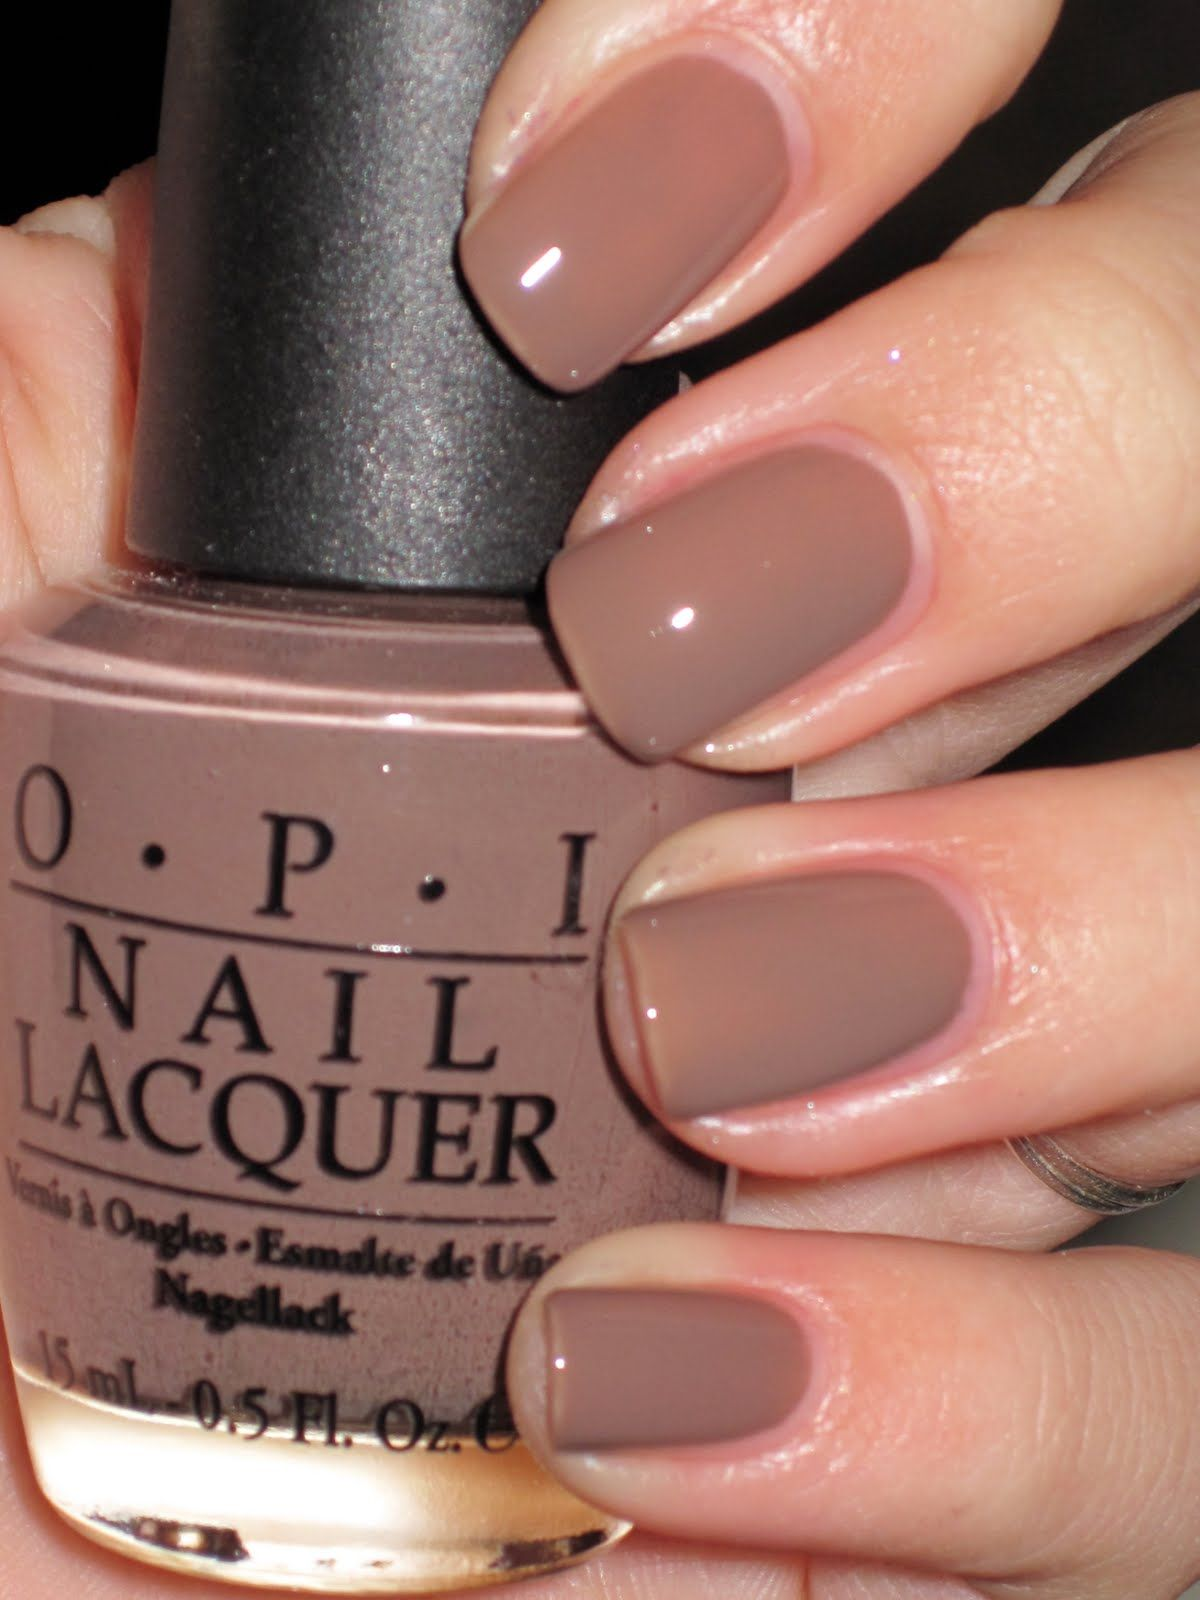 Top 5 Tuesday Nail Polish With Images Taupe Nails Opi Nail Colors Nail Polish